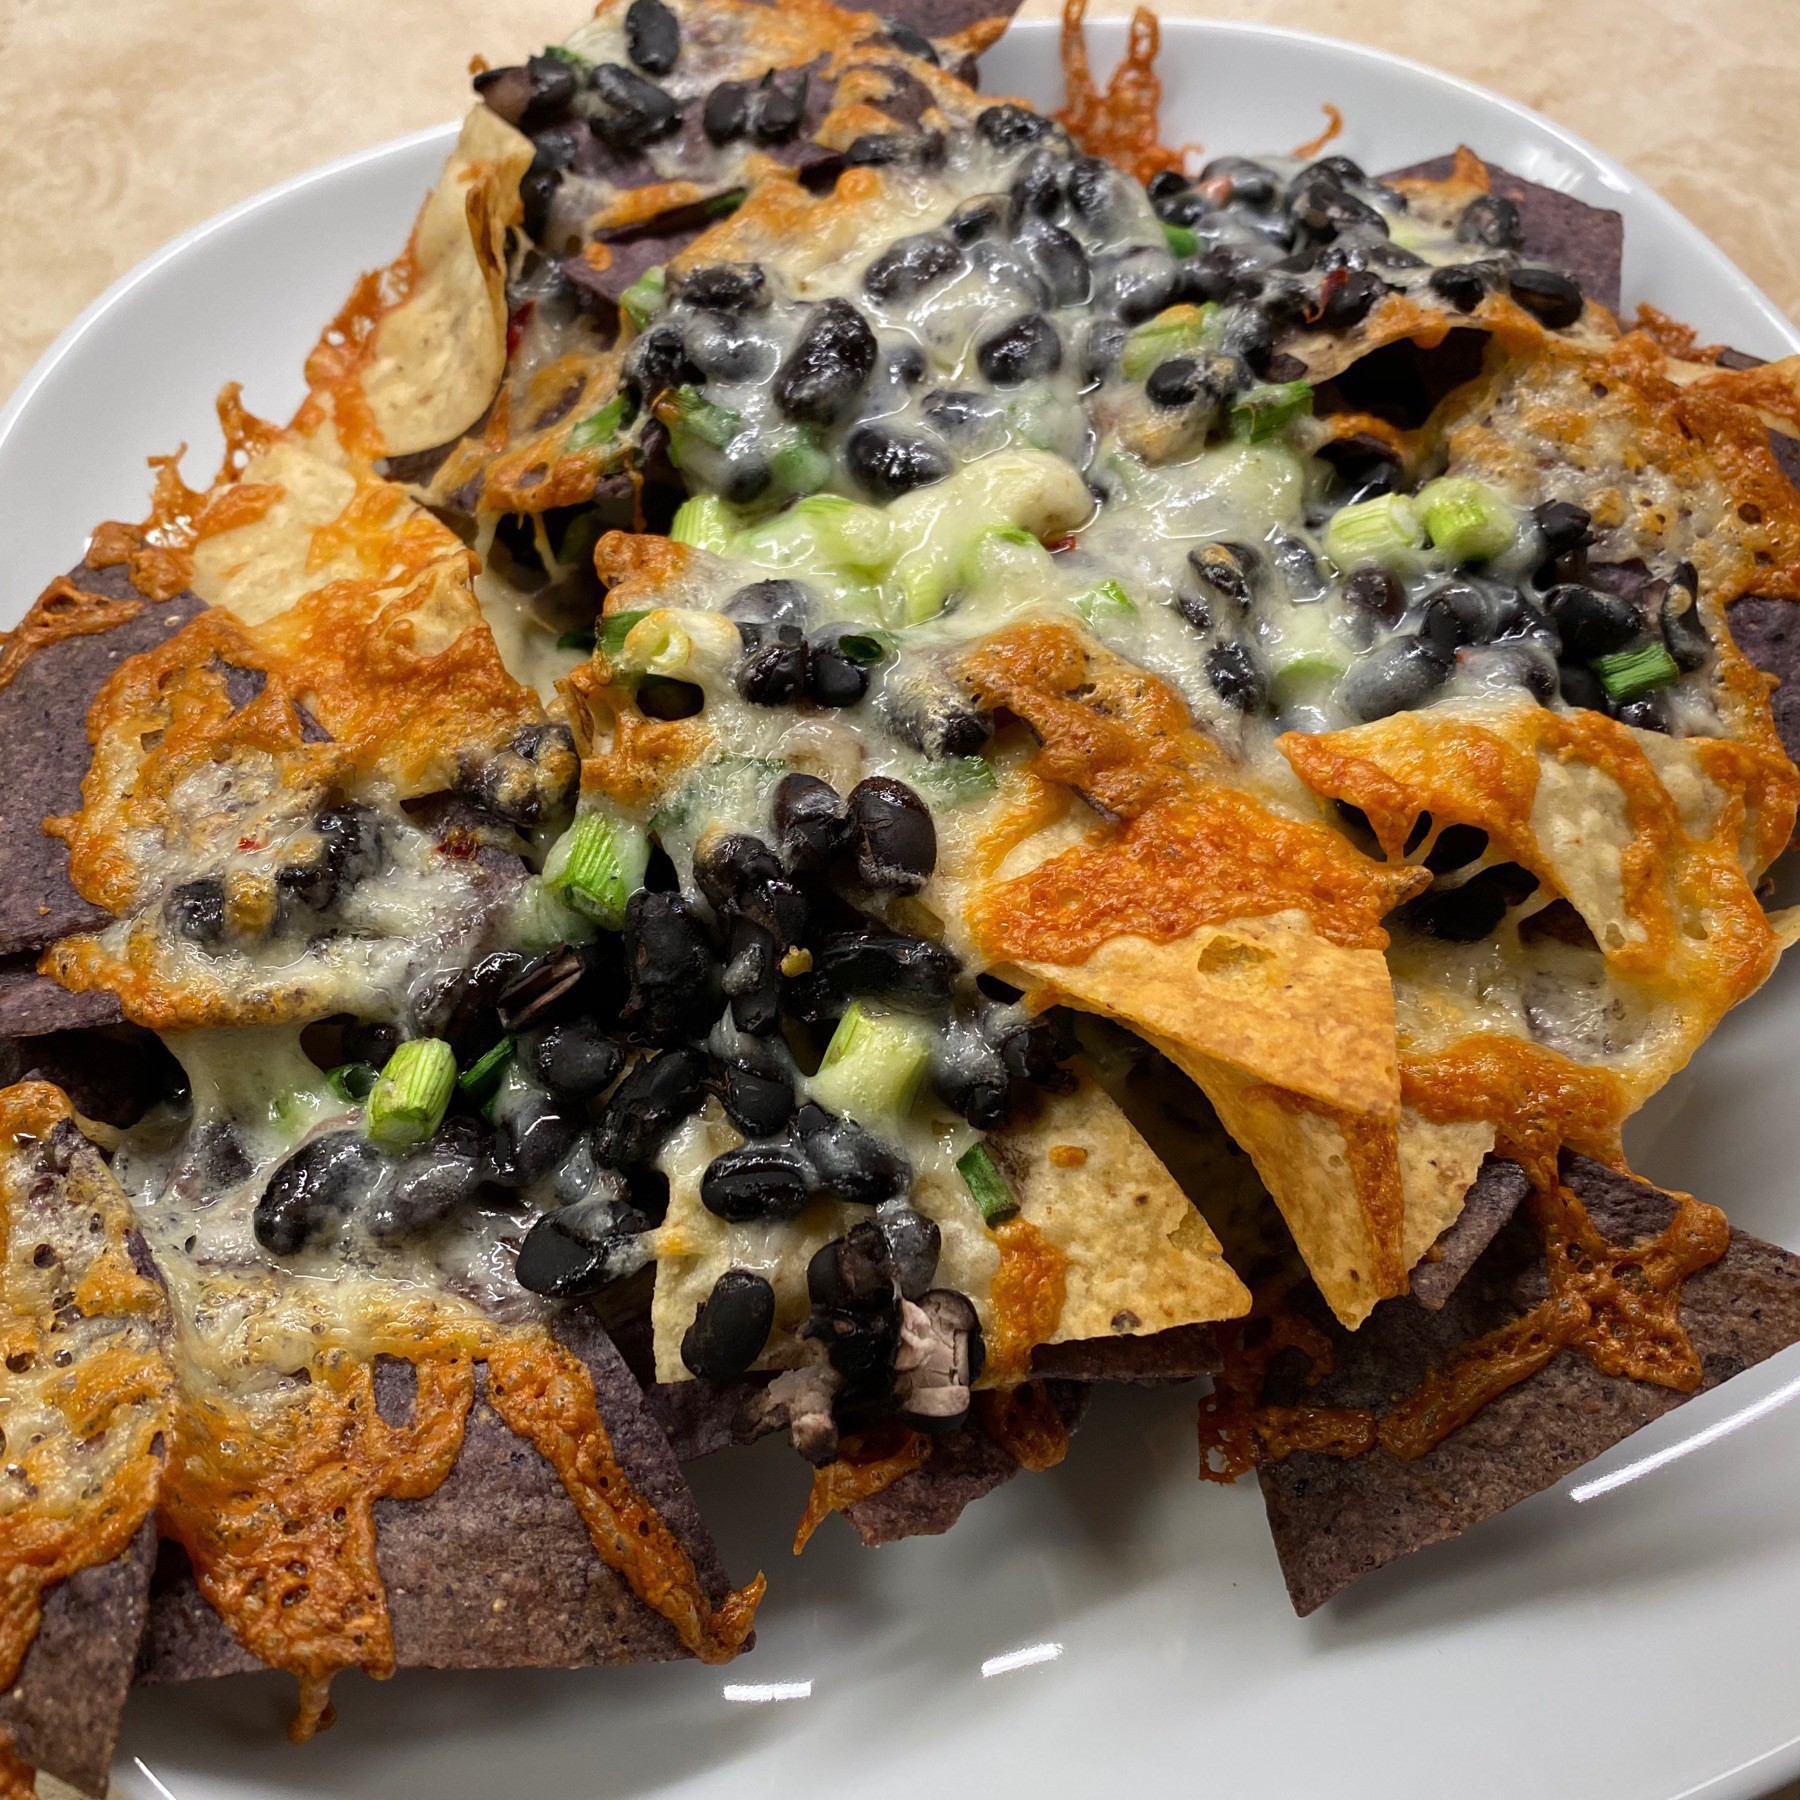 Nachos with black beans and cheese on plate.